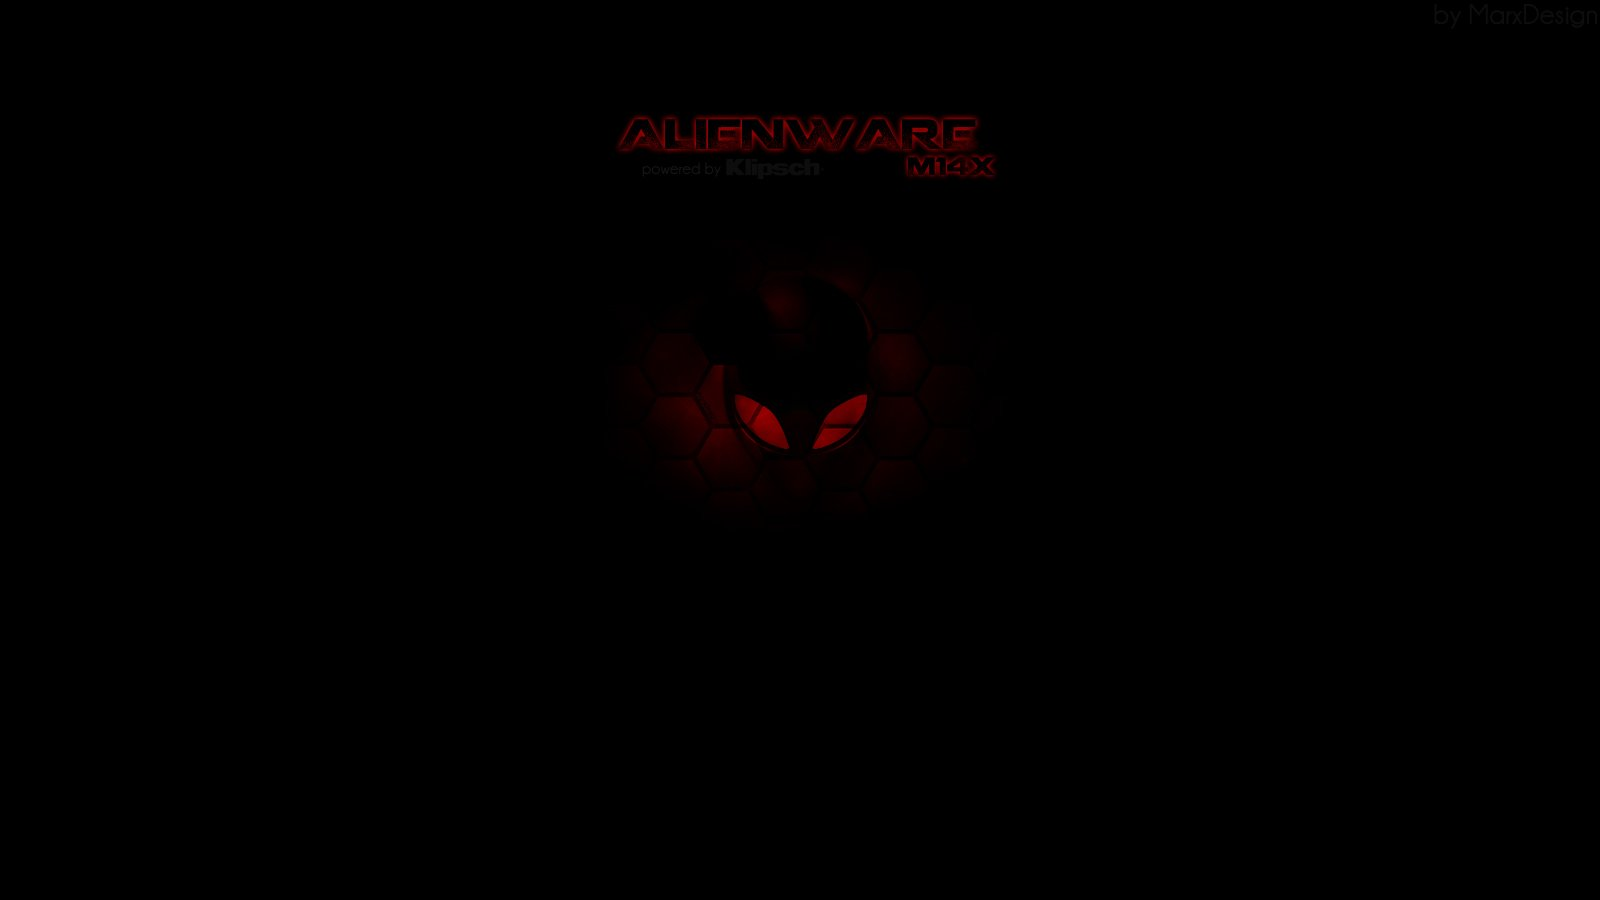 Alienware Wallpaper Hd Red 18369 wallpaper   Wallatarcom 1600x900